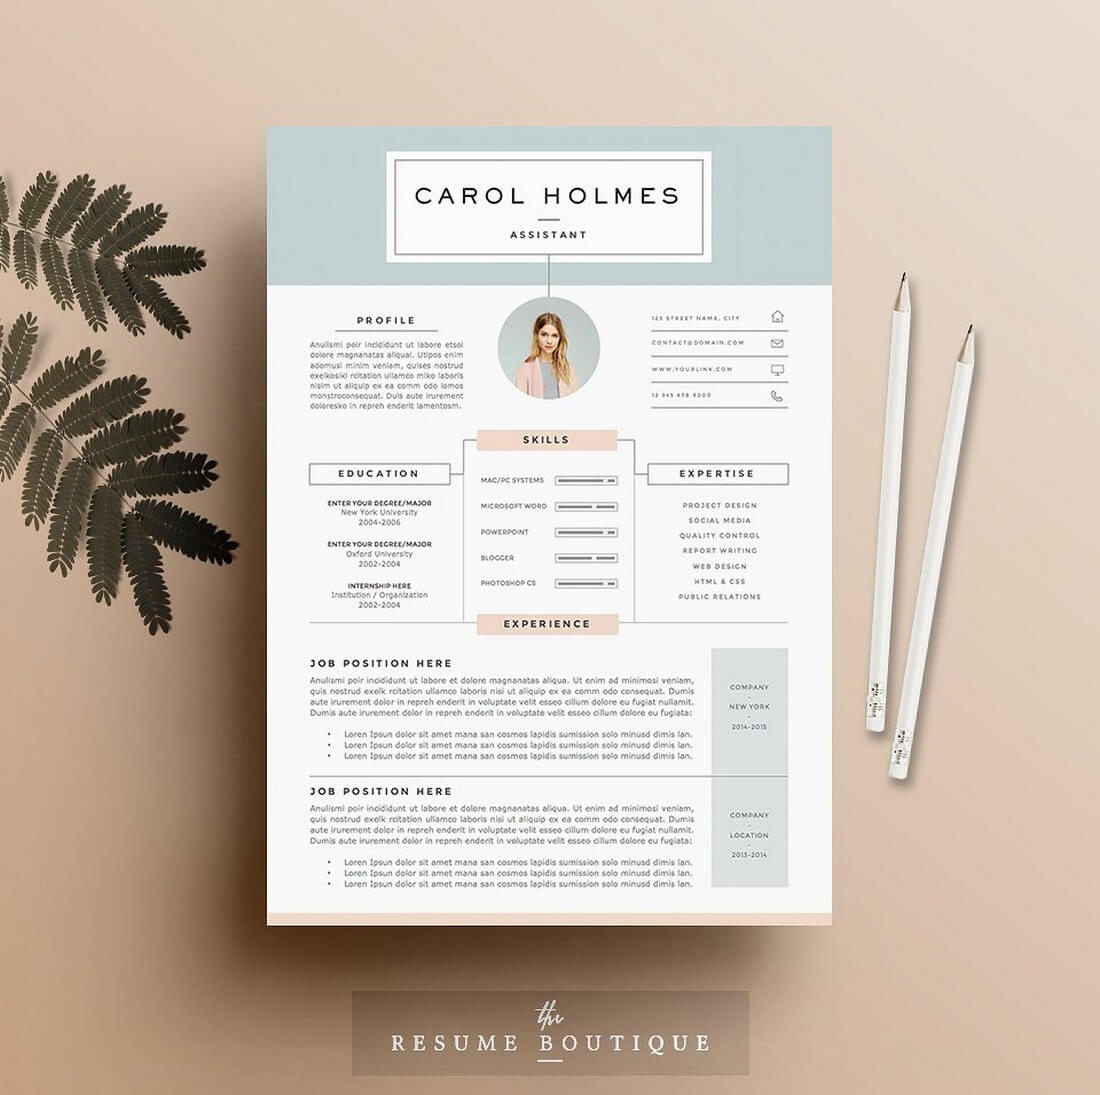 The Best CV & Resume Templates: 50 Examples 16